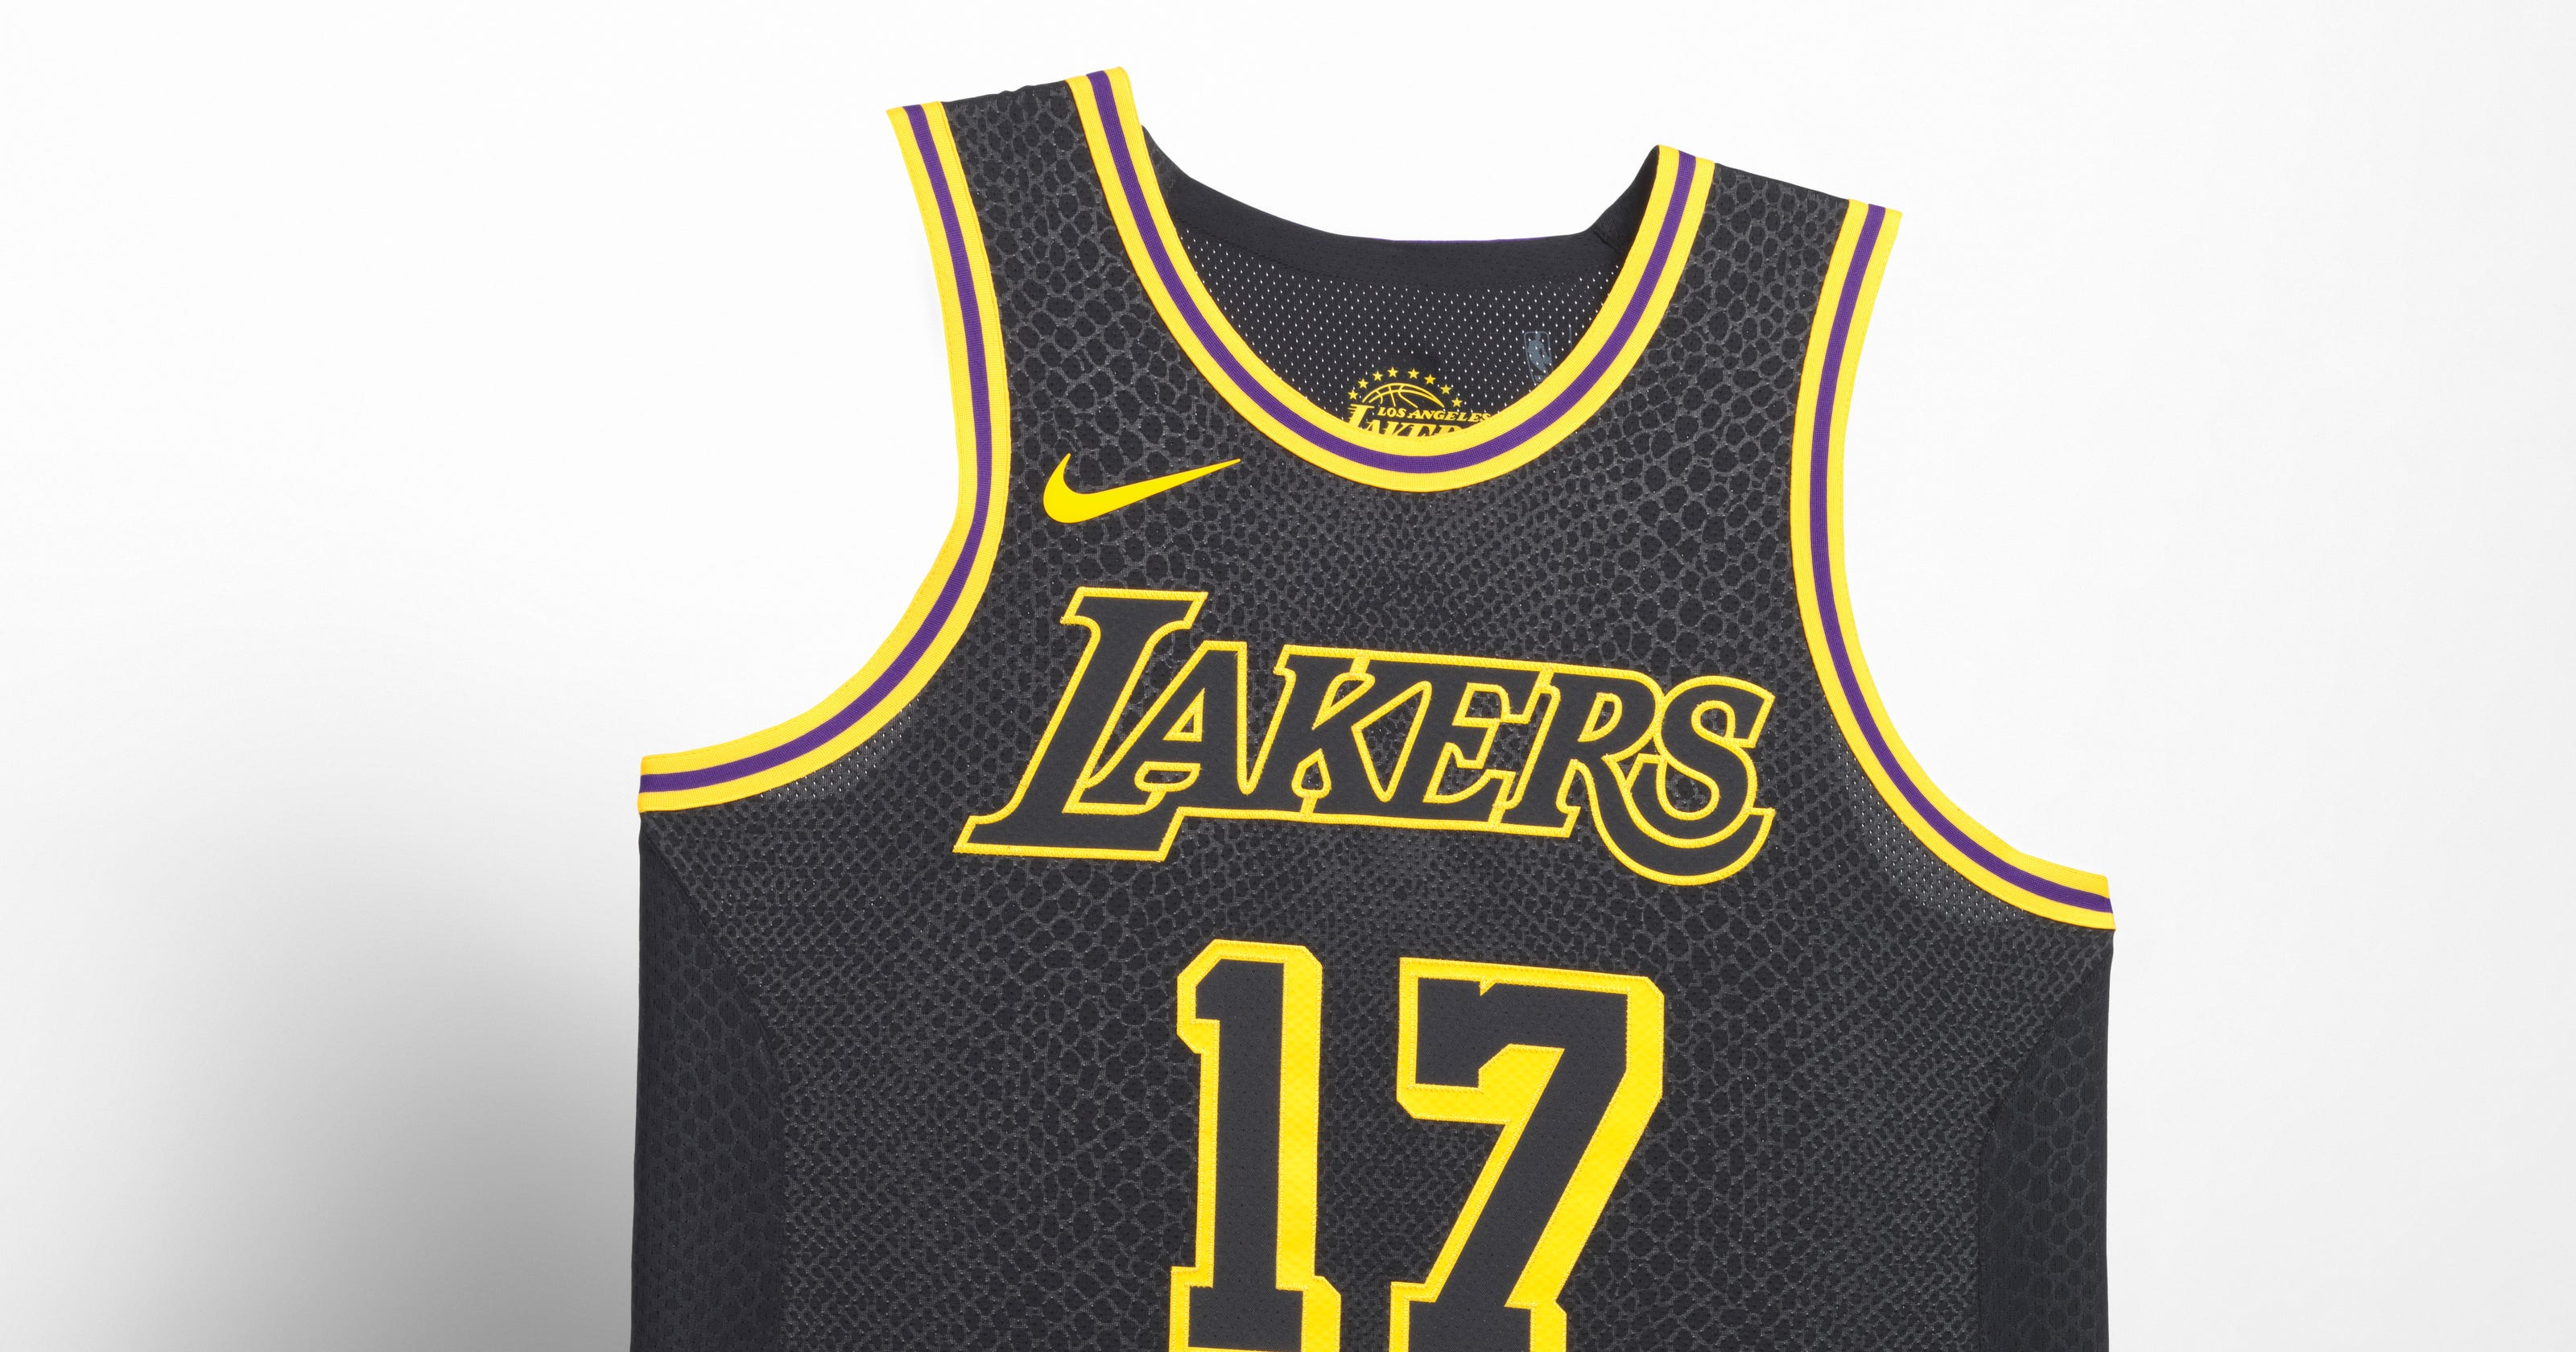 Nike NBA City Edition uniforms  The story behind the design process f0797dd46